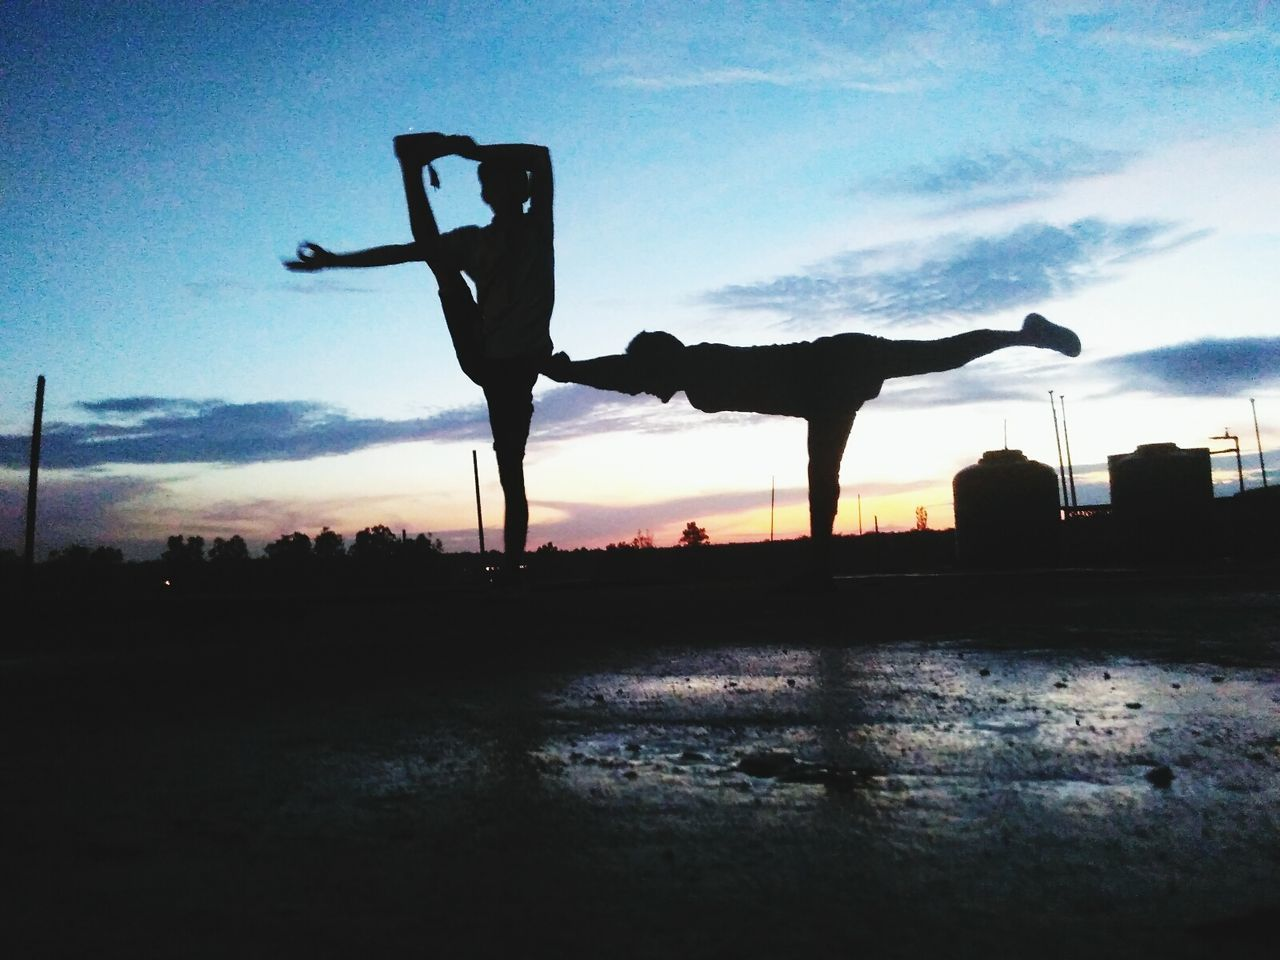 Sunset Silhouette Sky Mid-air Field Cloud Moody Sky Person Outdoors Cloud - Sky Scenics Tranquility Tranquil Scene Pedestal Yoga Yogalover Yogateacher Yogainspiration Yoga ॐ Yogachallenge Yogaeverydamnday Yoga Pose First Eyeem Photo Non-urban Scene Beauty In Nature